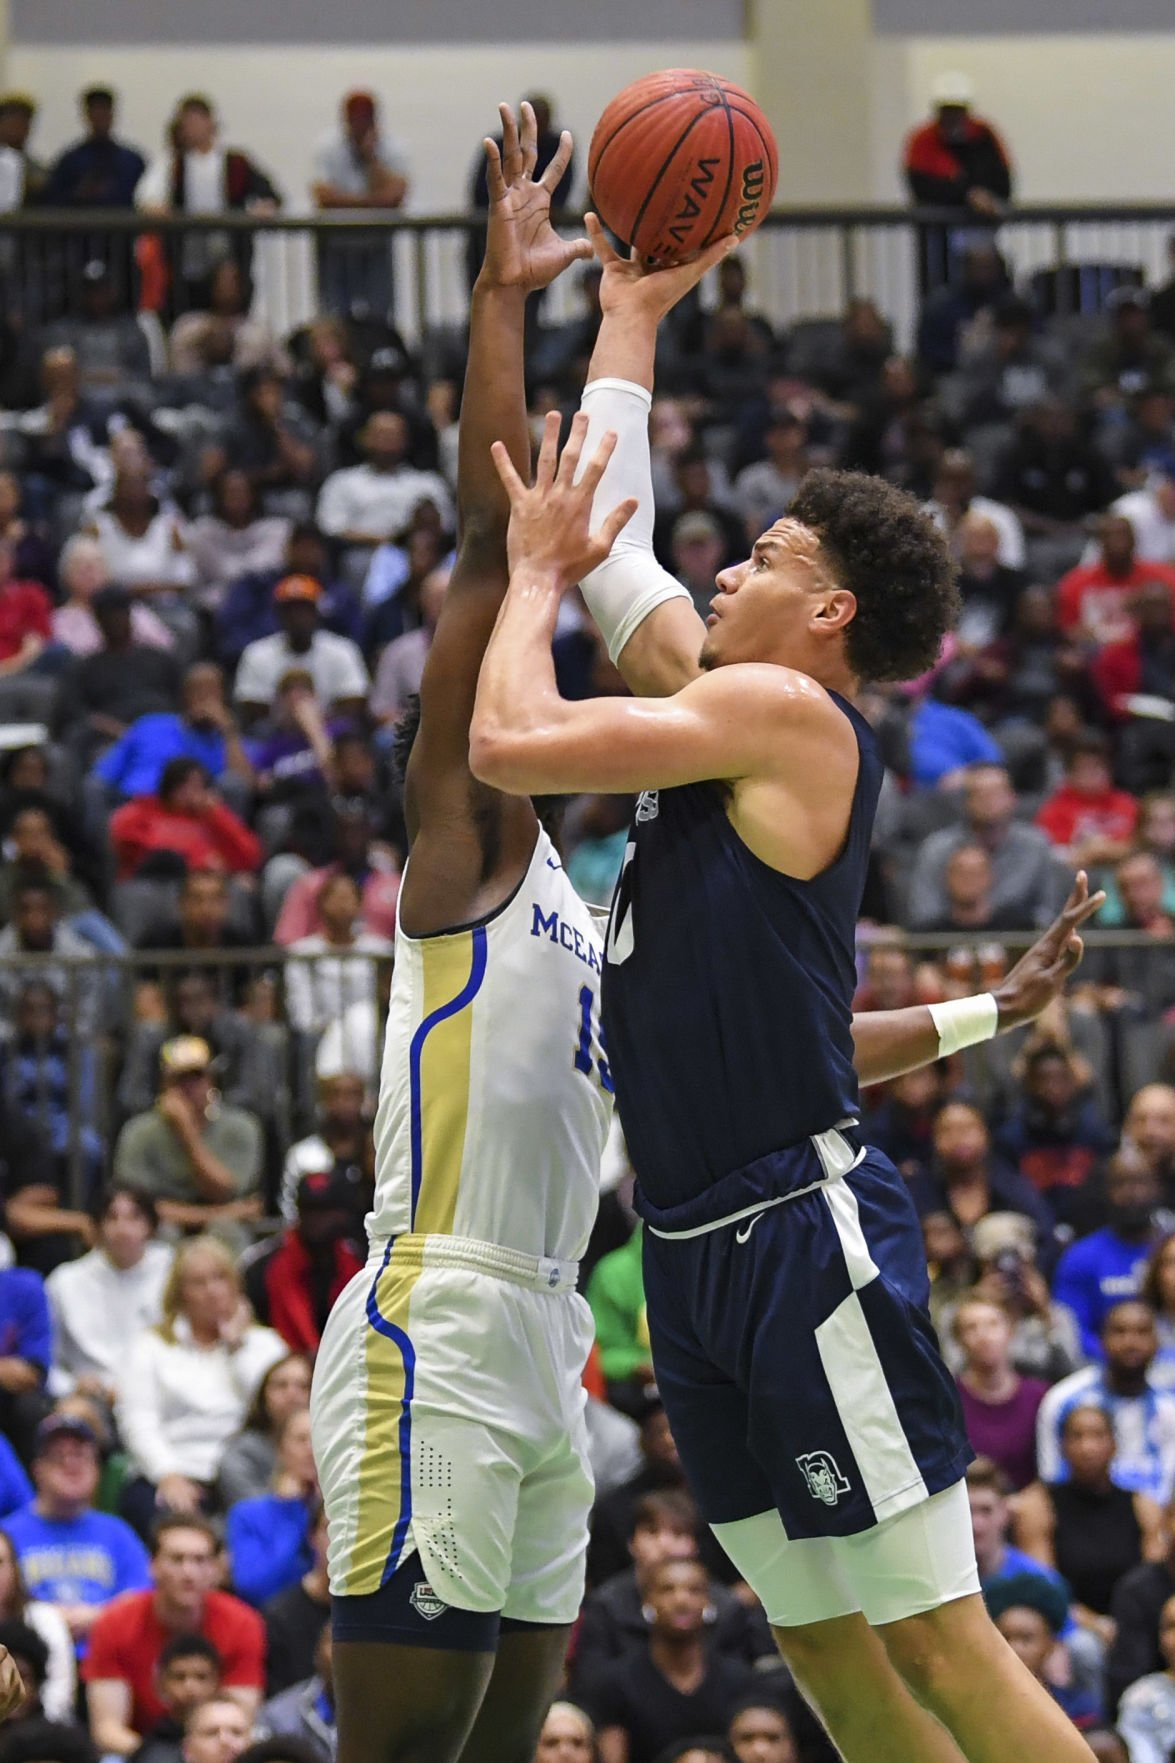 Norcross boys push national No. 1 McEachern to the brink in OT loss